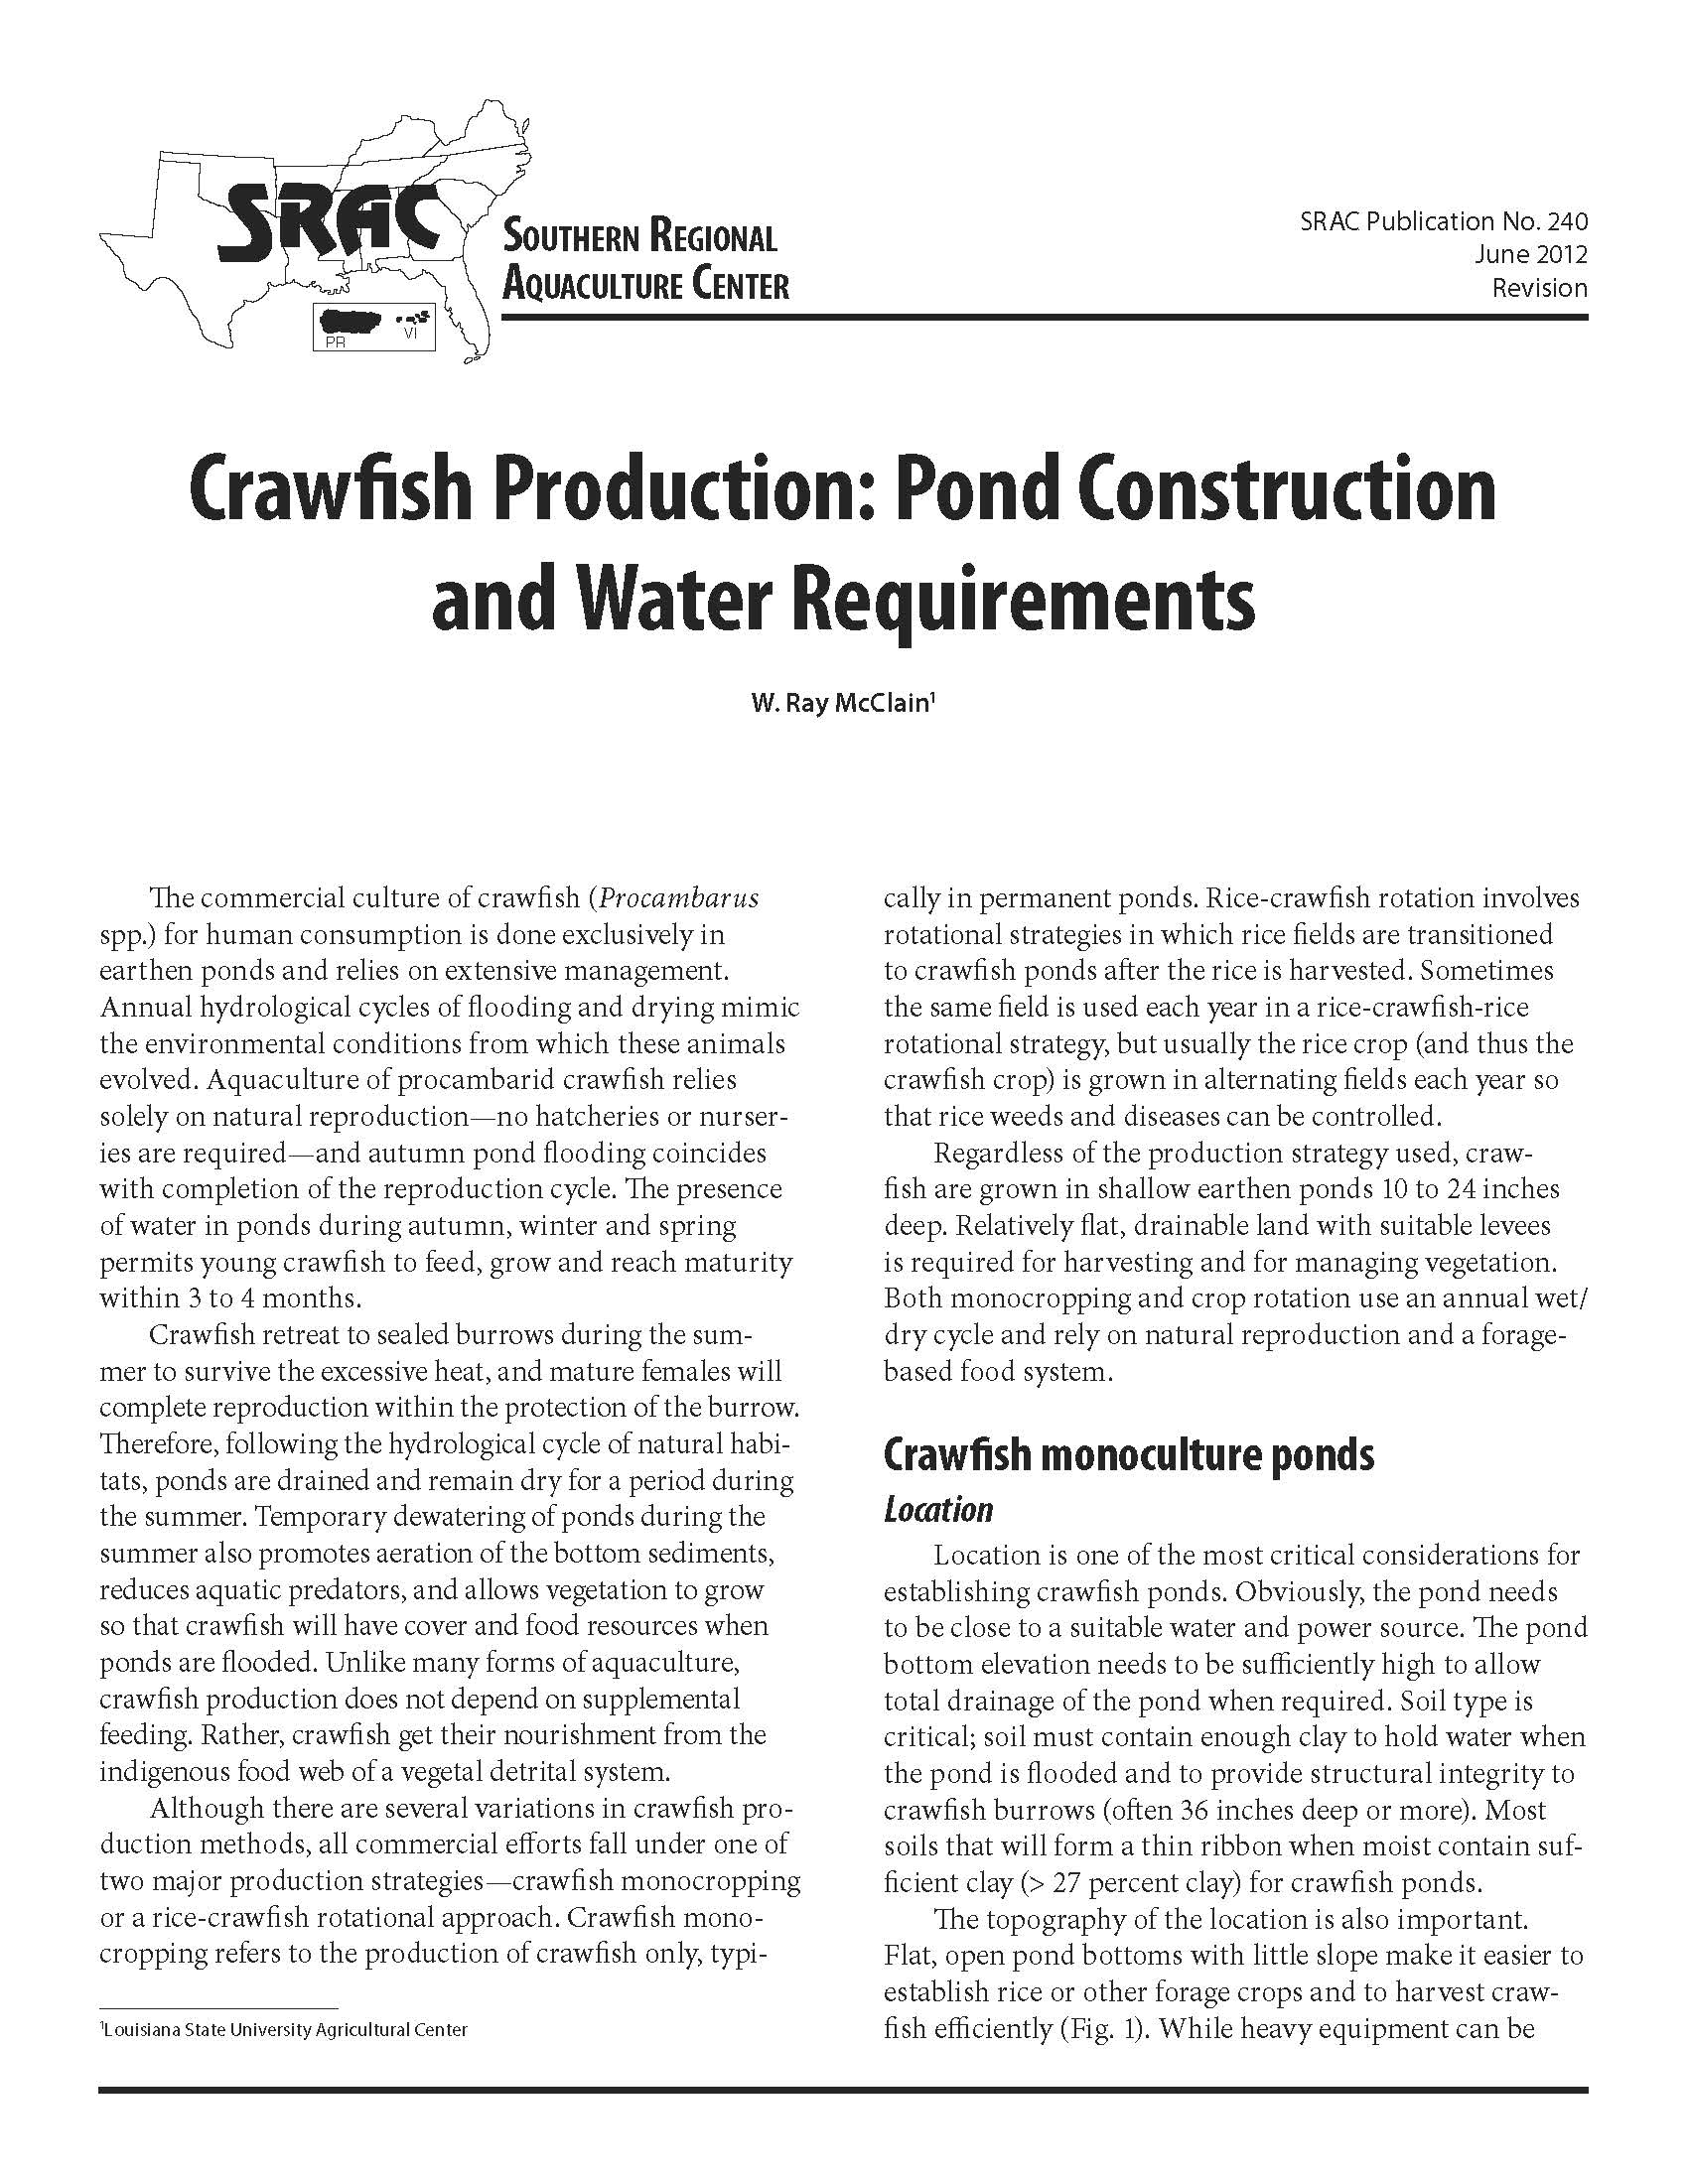 Crawfish Production: Pond Construction and Water Requirements